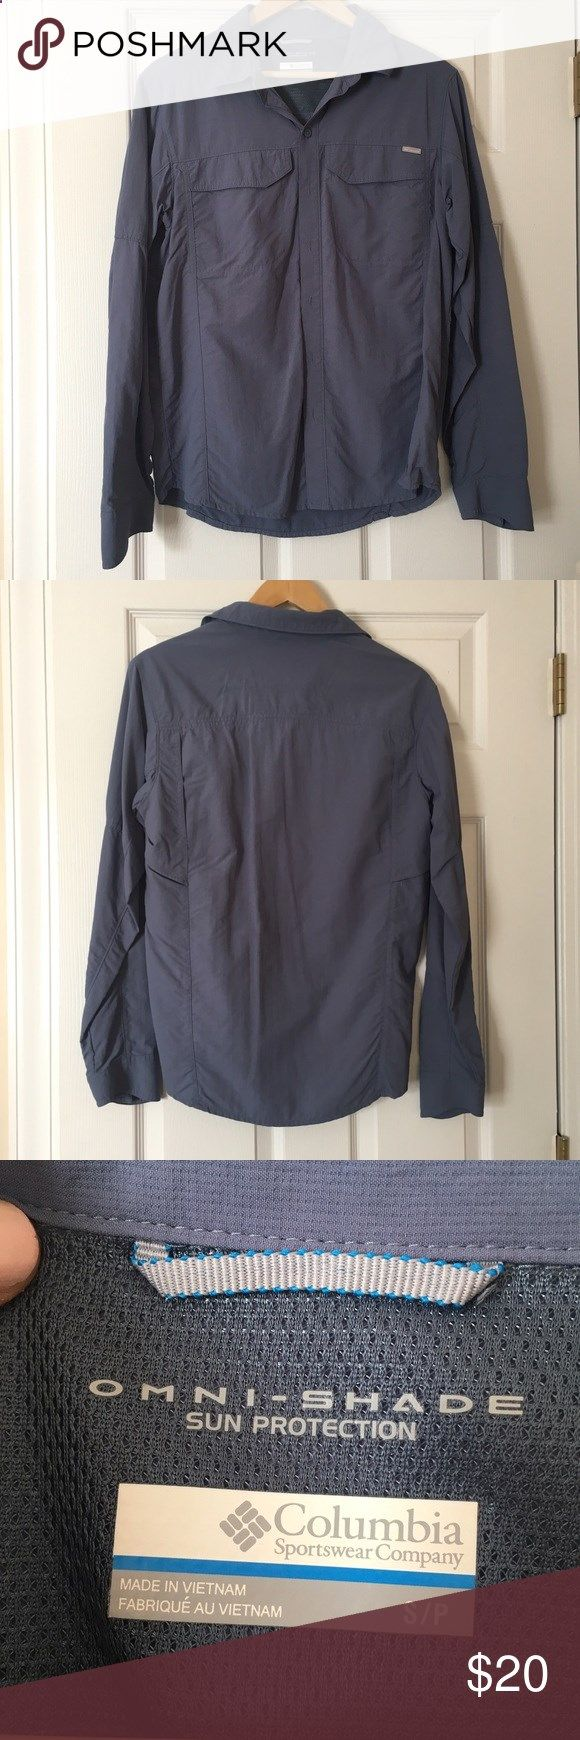 Fishing Shirts - Slate Blue Columbia Fishing Shirt MENS SMALL!!! Worn as a cover up and with athletic shorts for fishing! Columbia Tops Tees - Long Sleeve